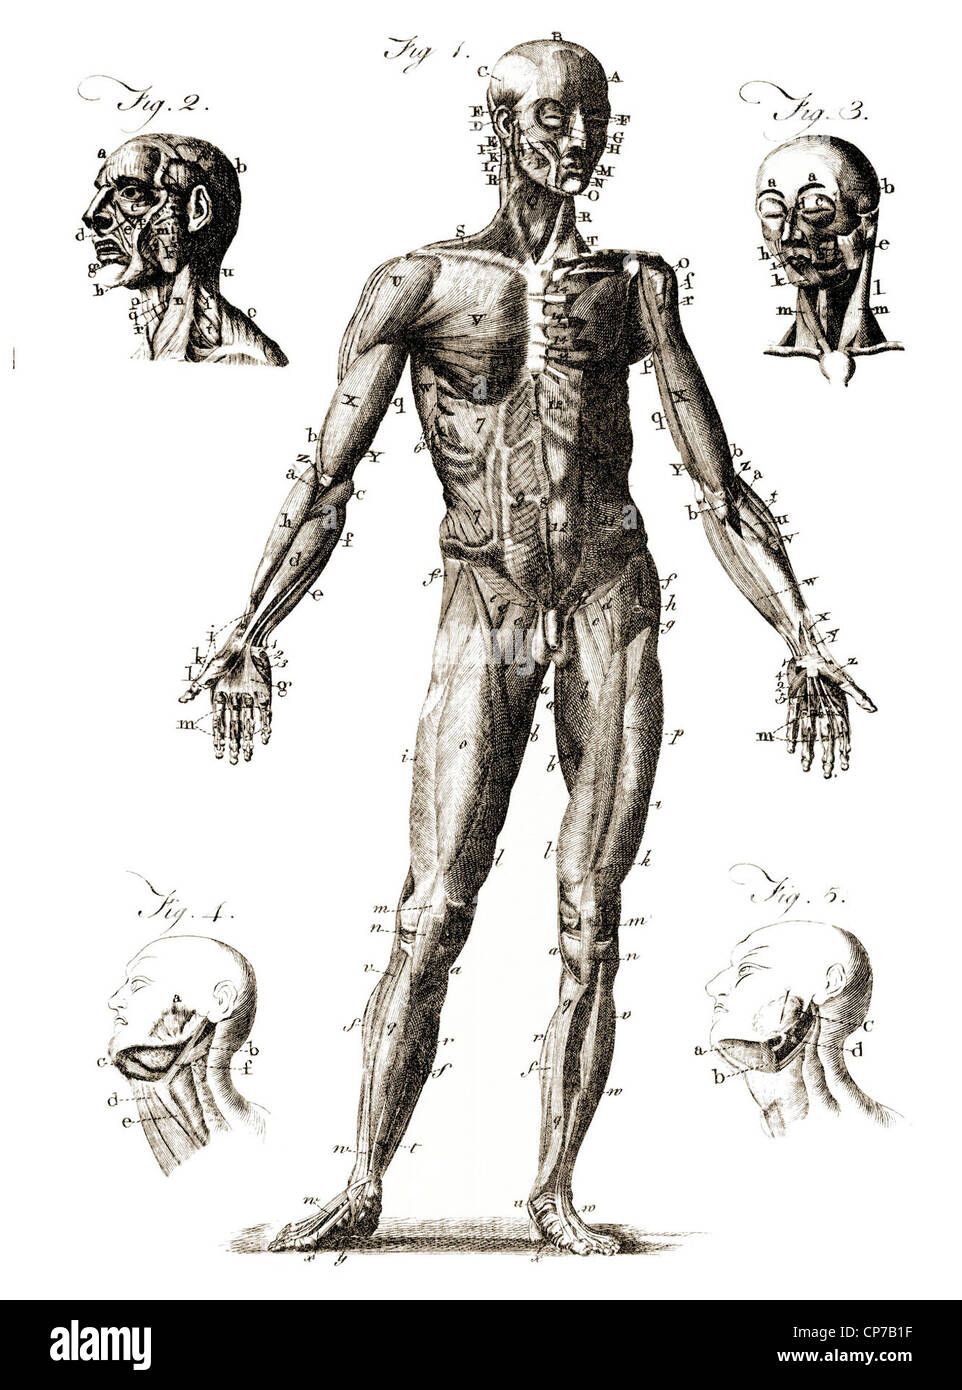 hight resolution of diagram showing labeled human anatomy published by unknown engraver in encyclopedia britannica 1771